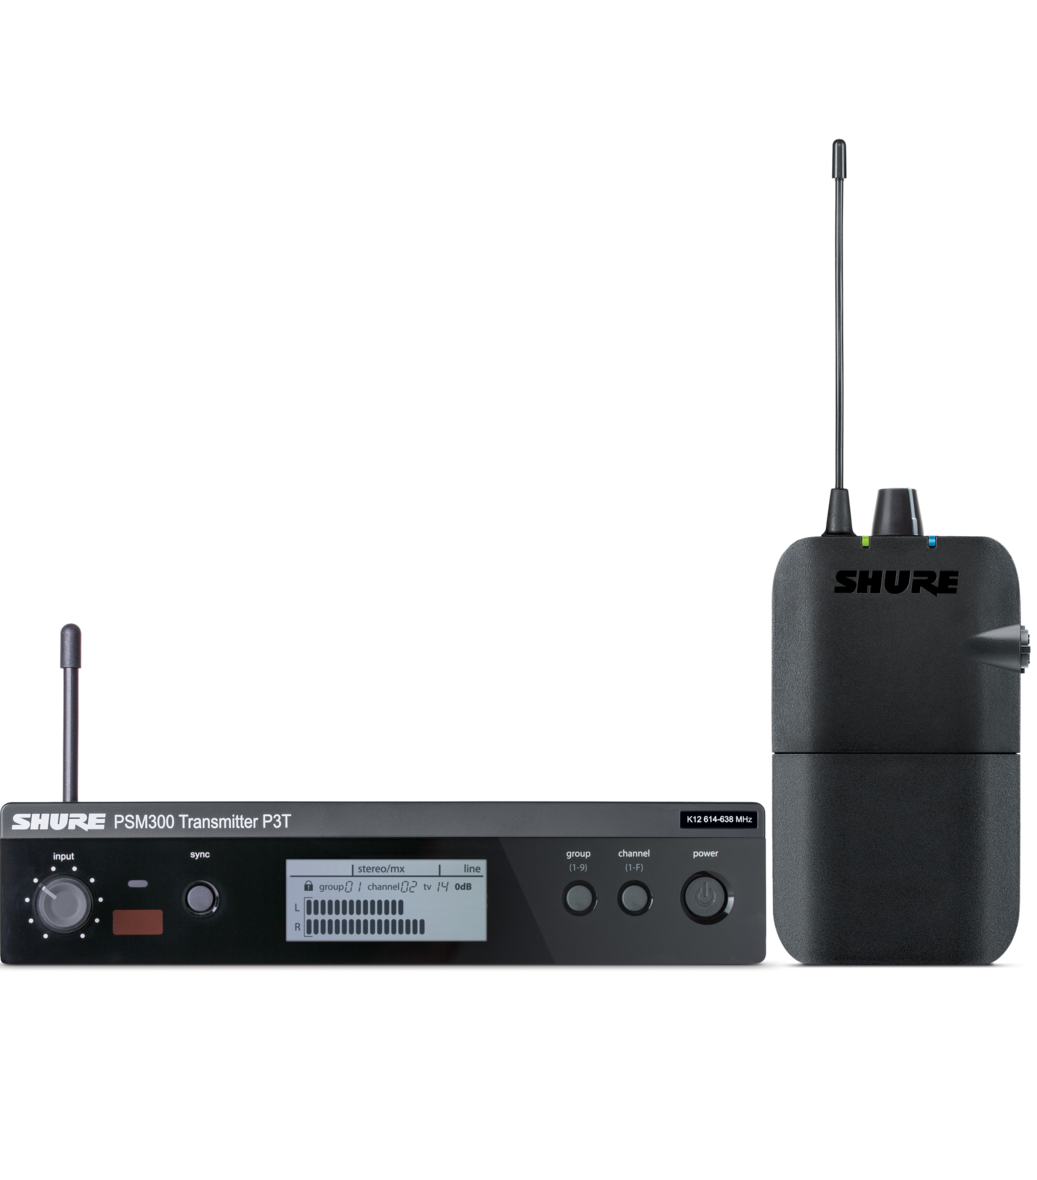 Shure P3TER - PSM300 System S8 (823-832MHz)